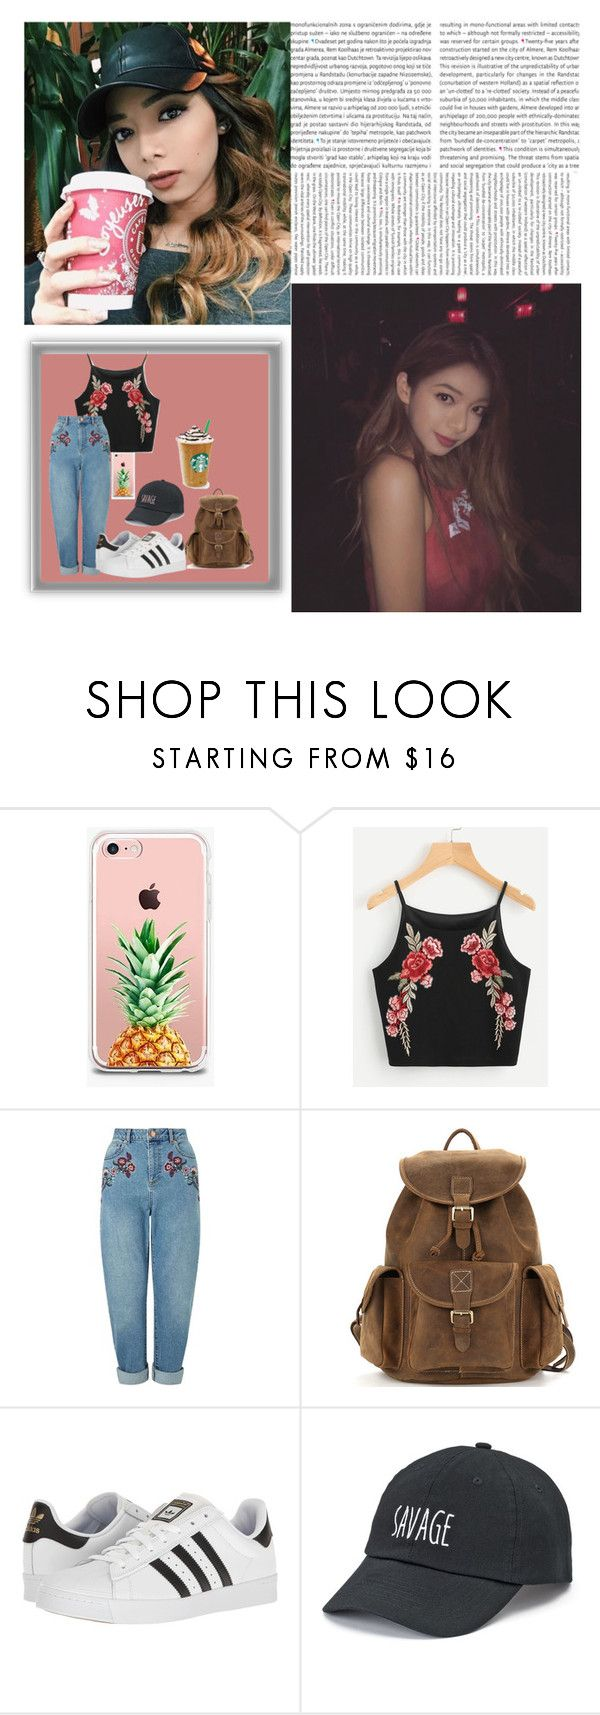 """Getting Coffee ✯ Nguyet"" by an-nguyet ❤ liked on Polyvore featuring Oris, The Casery, Miss Selfridge, adidas and SO"